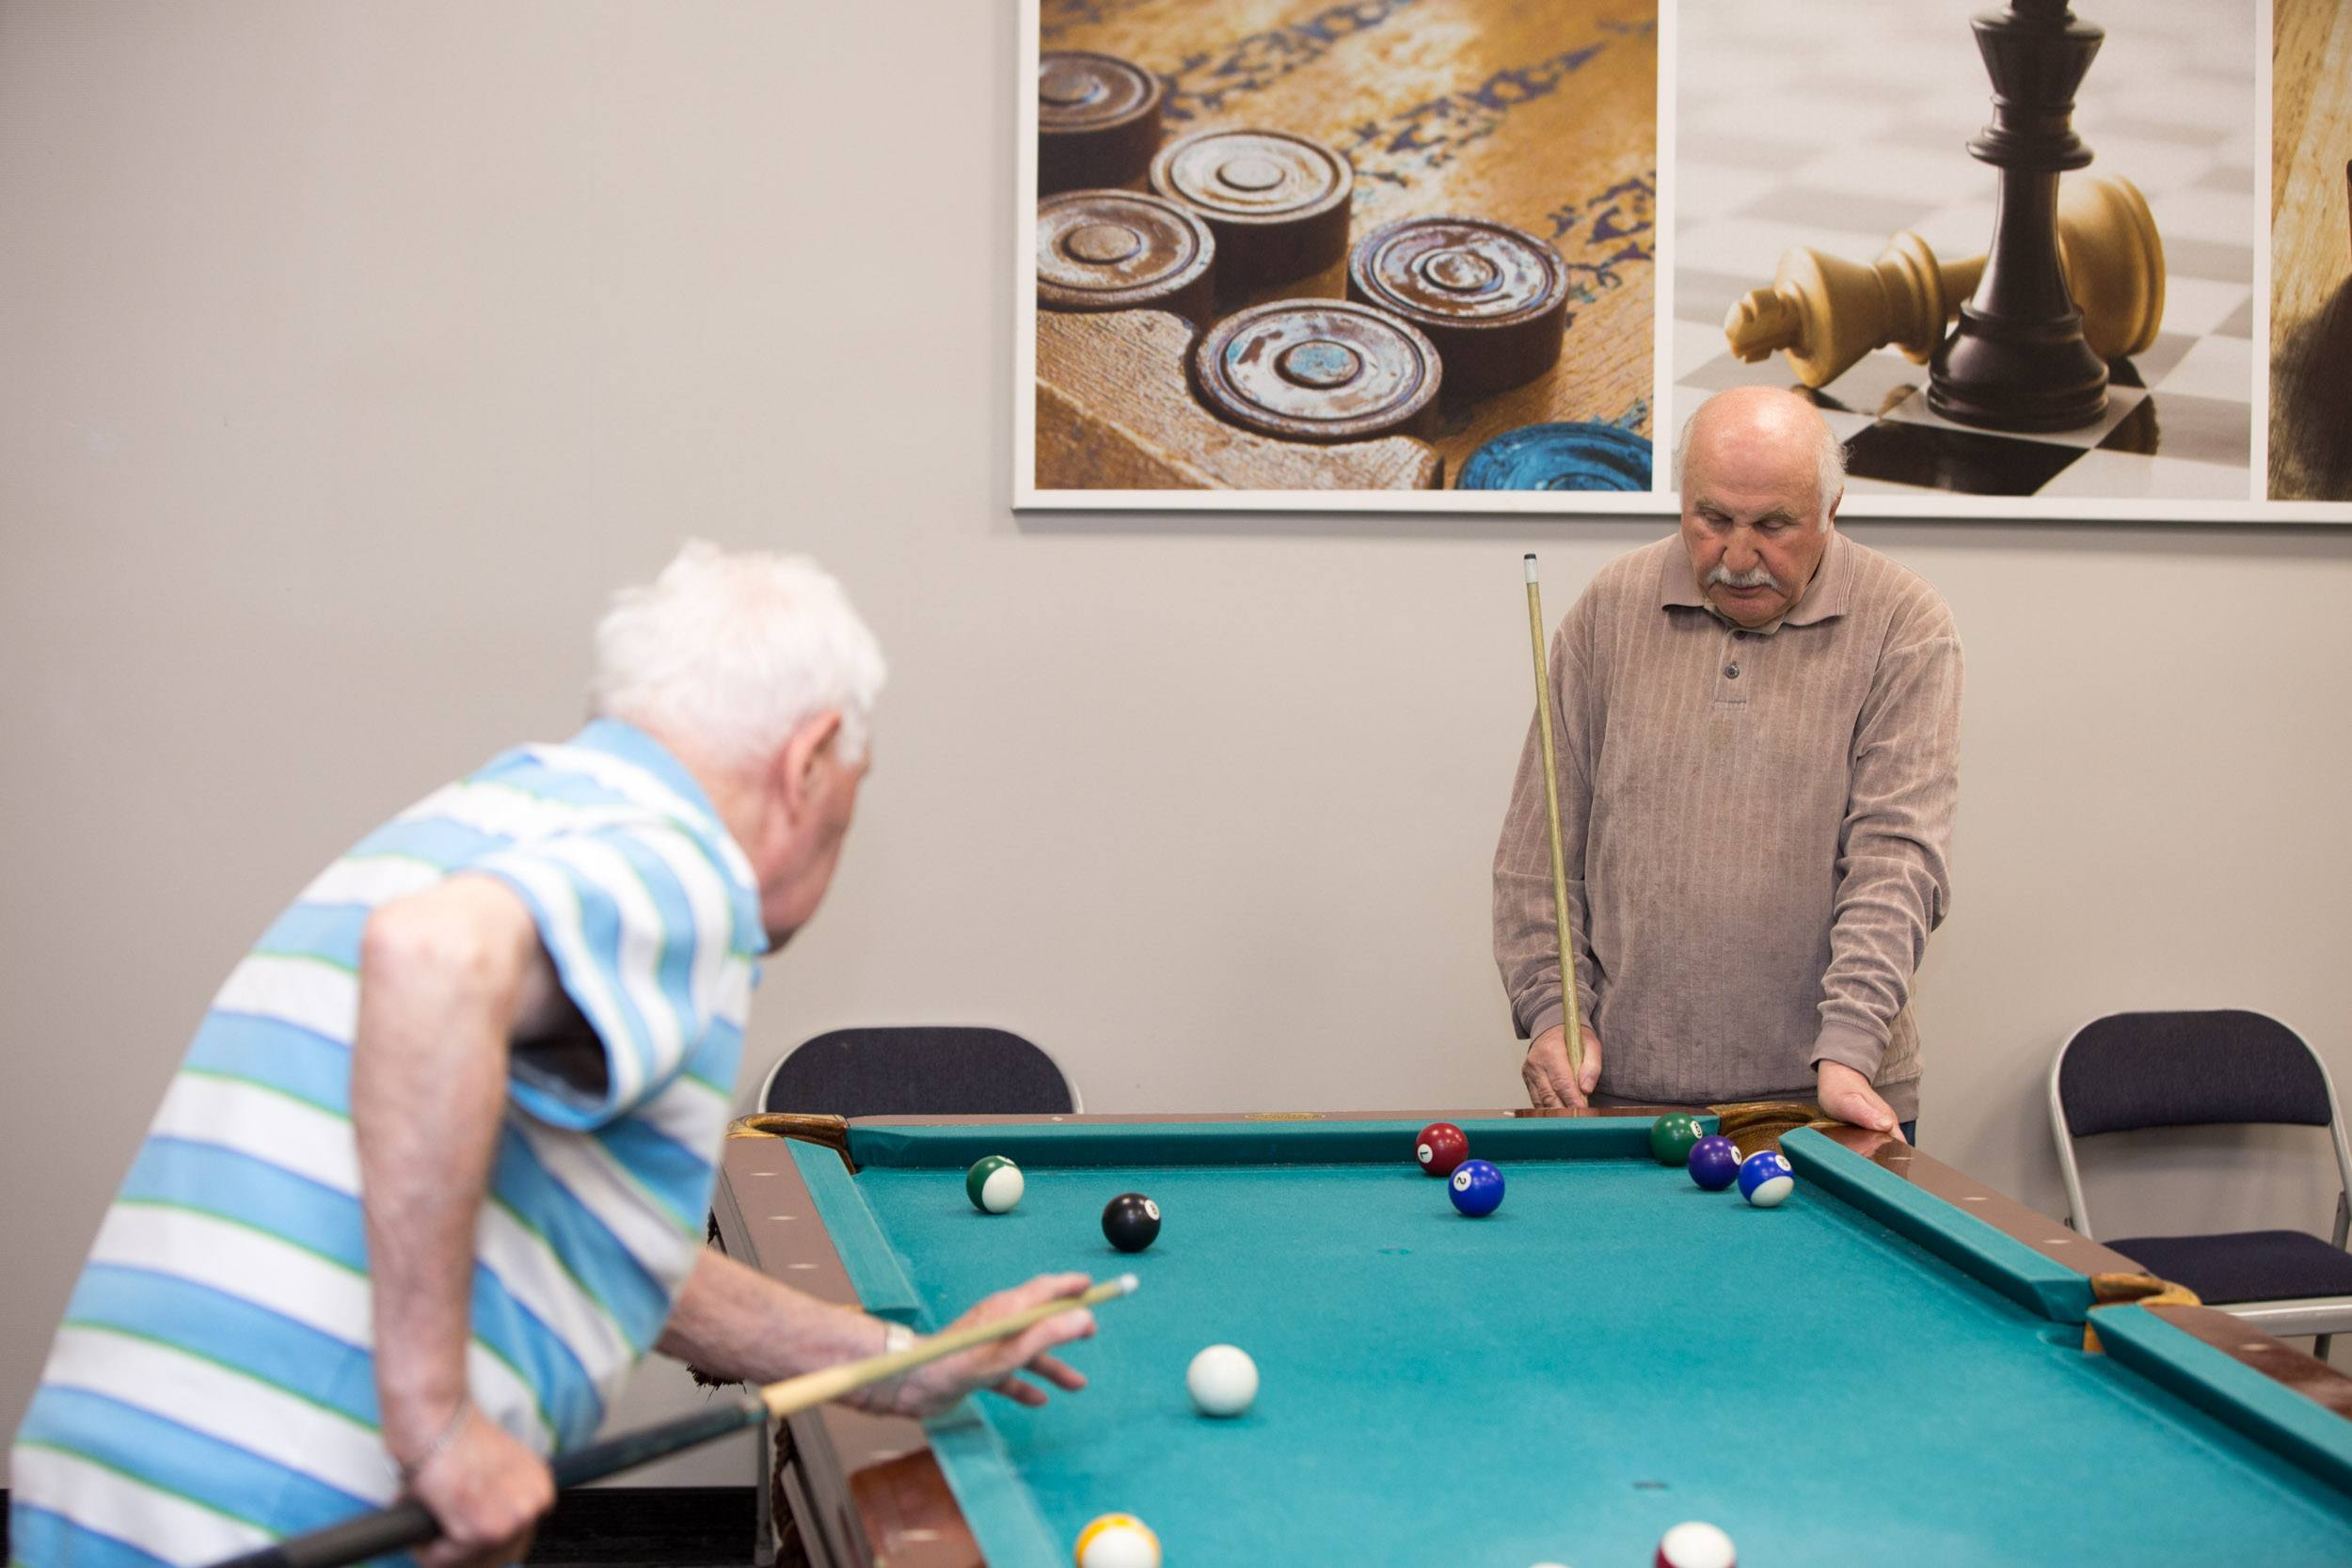 Recreation Activities at the Facility